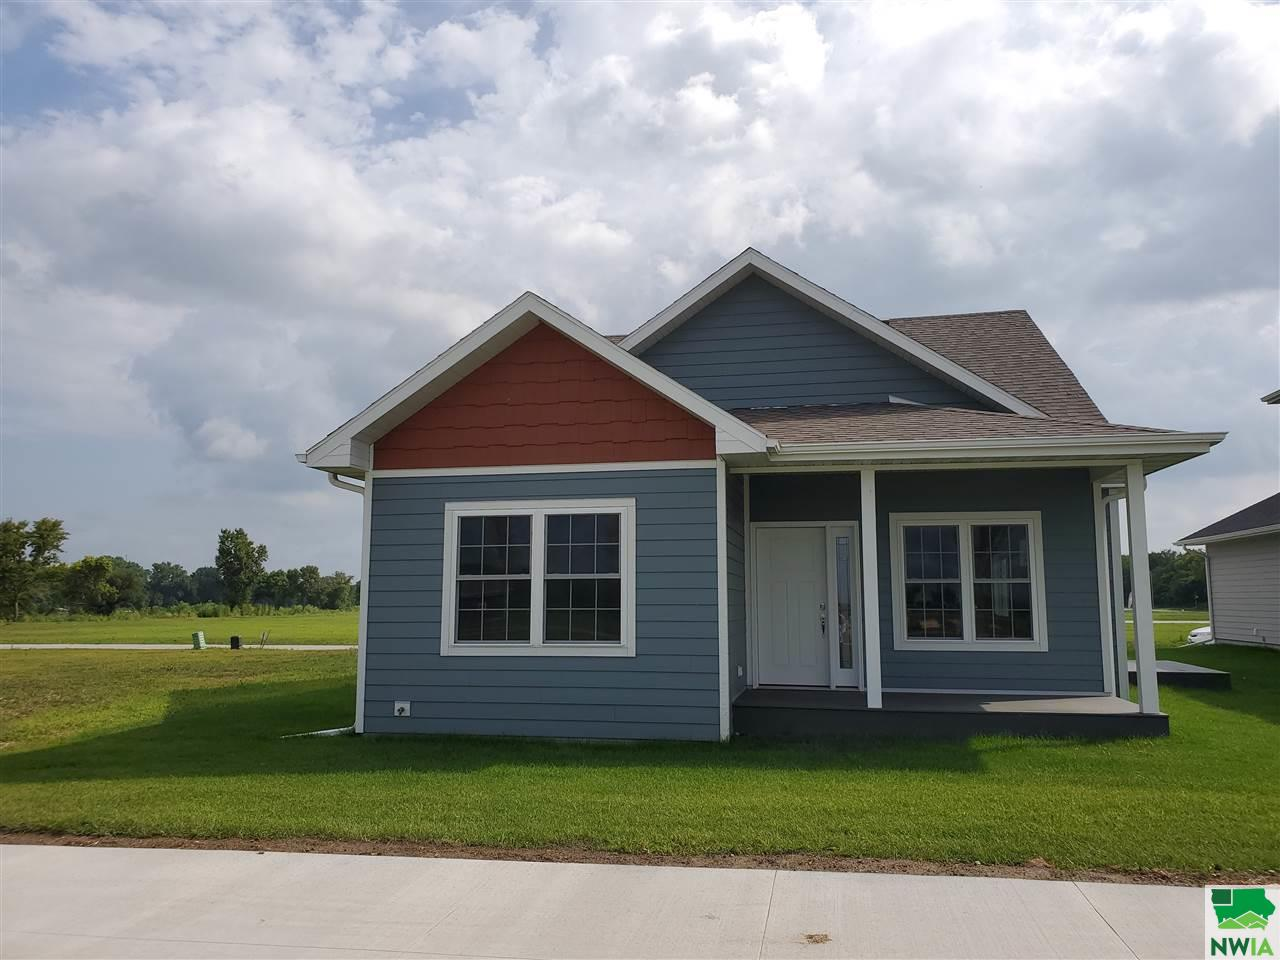 Property for sale at 3652 Prairie Grove, South Sioux City,  NE 68776